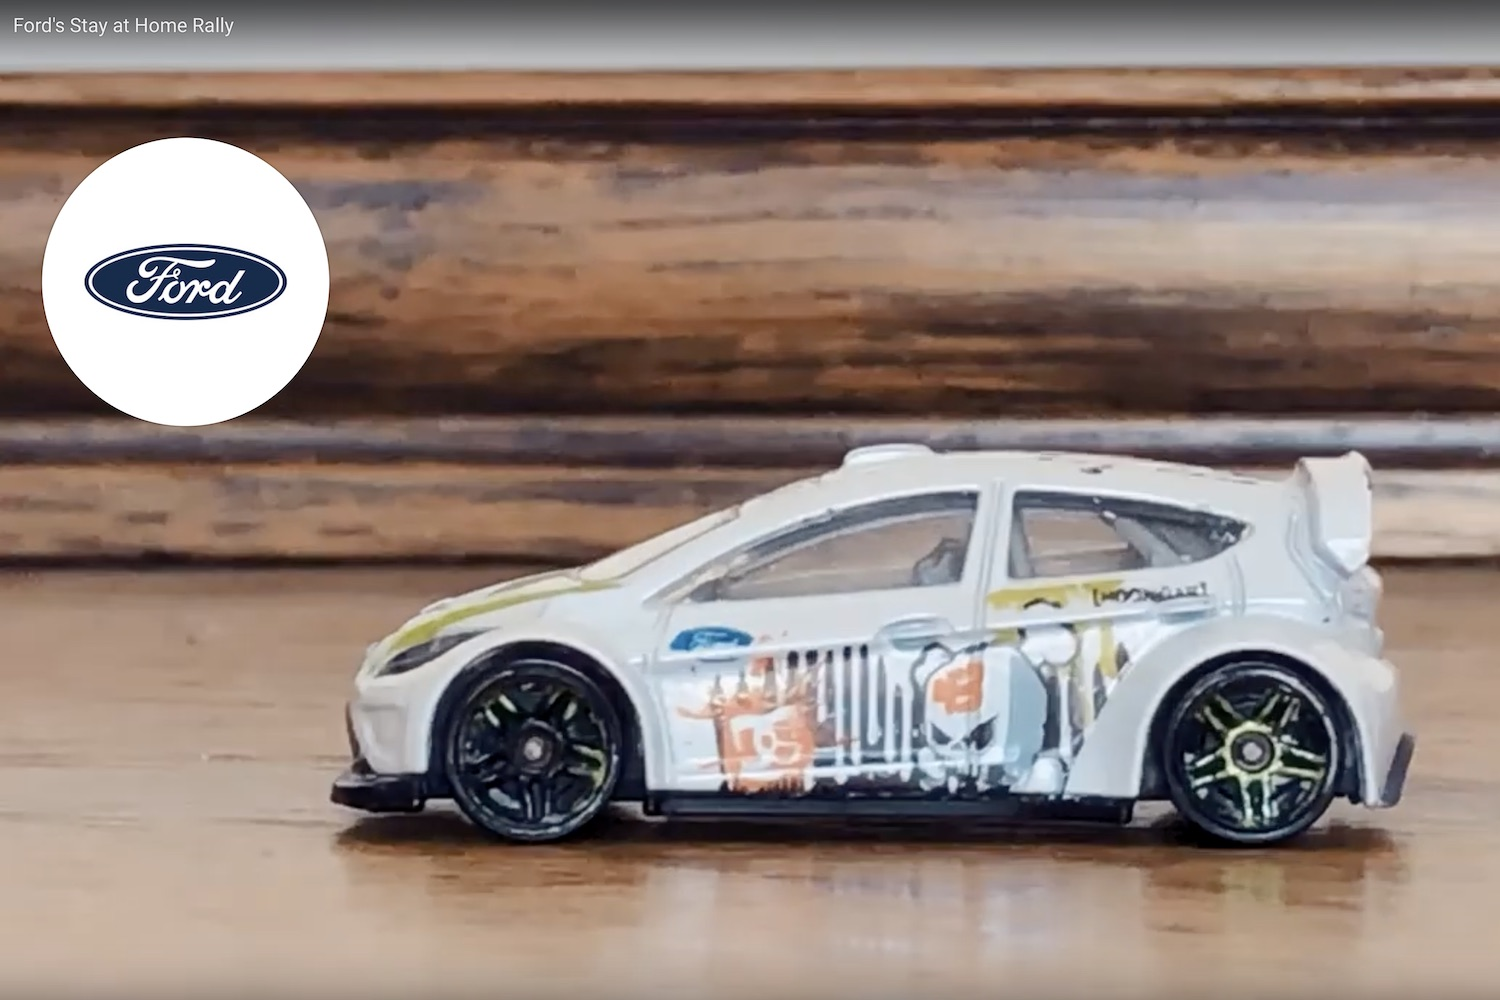 Car News | Stay at home advice from Ken Block and Ford | CompleteCar.ie